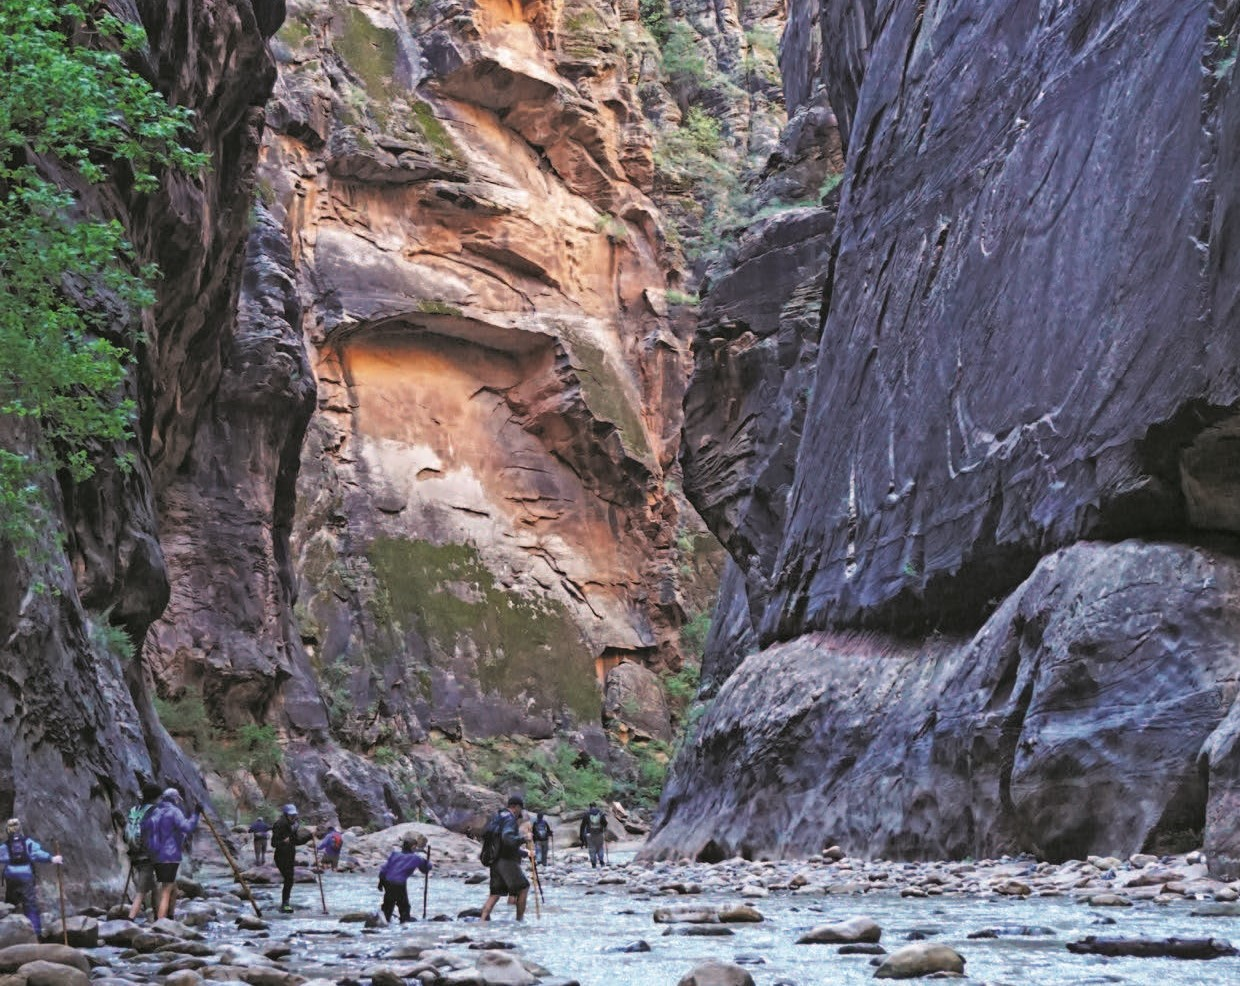 Zion National Park's Must-See Sights & Activities